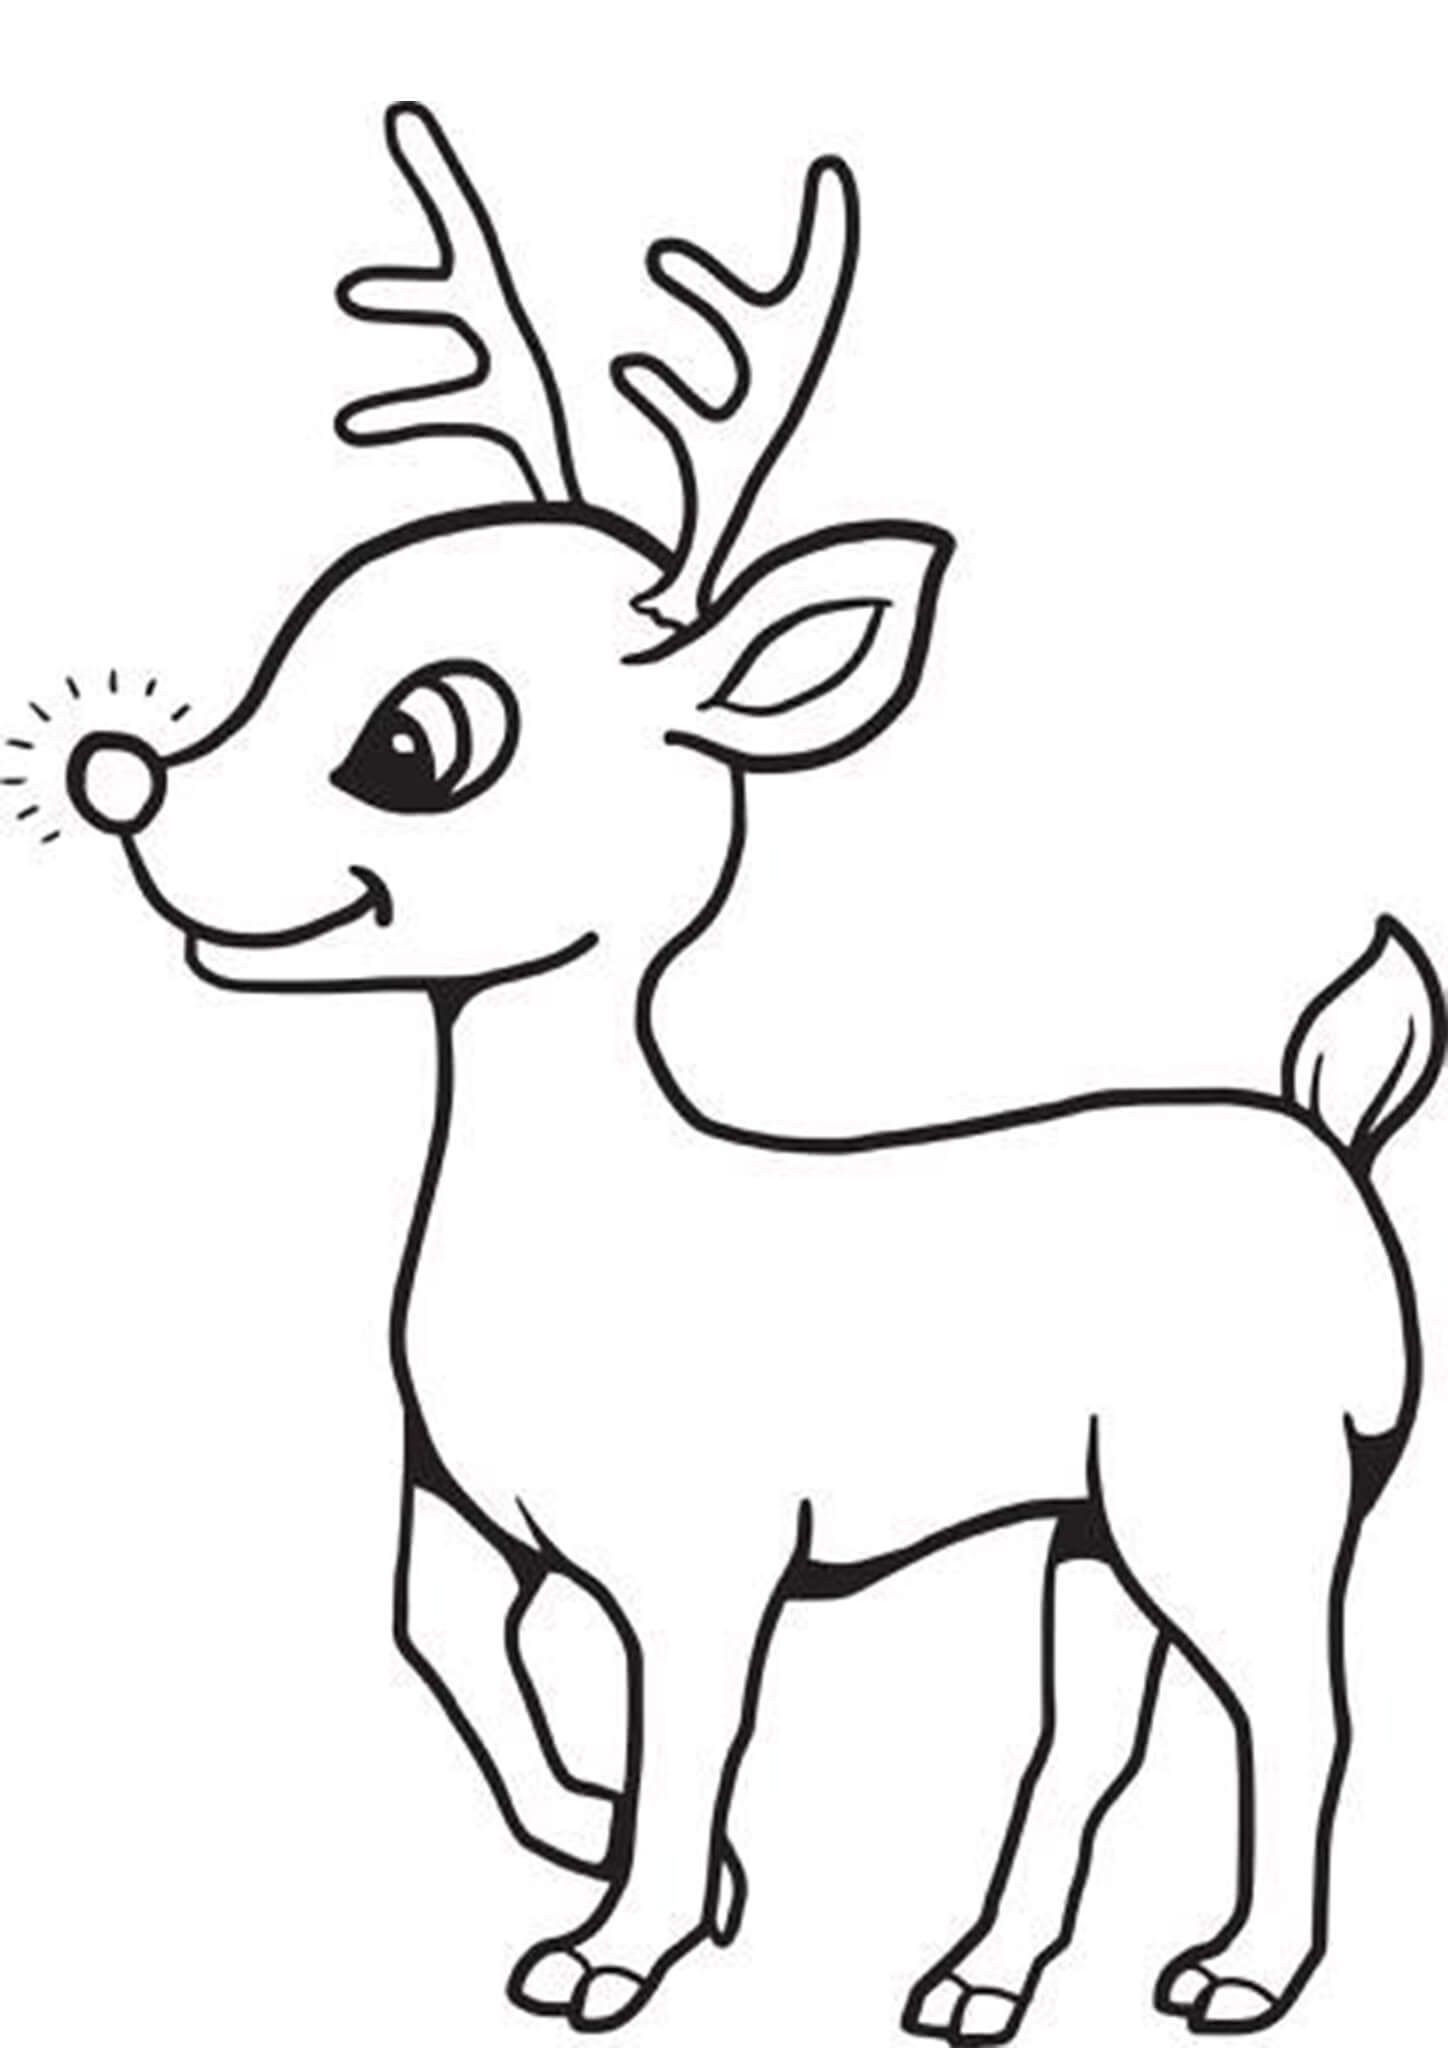 Rudolph The Red Nosed Reindeer Coloring Pages Kids Christmas Coloring Pages Printable Christmas Coloring Pages Free Christmas Coloring Pages